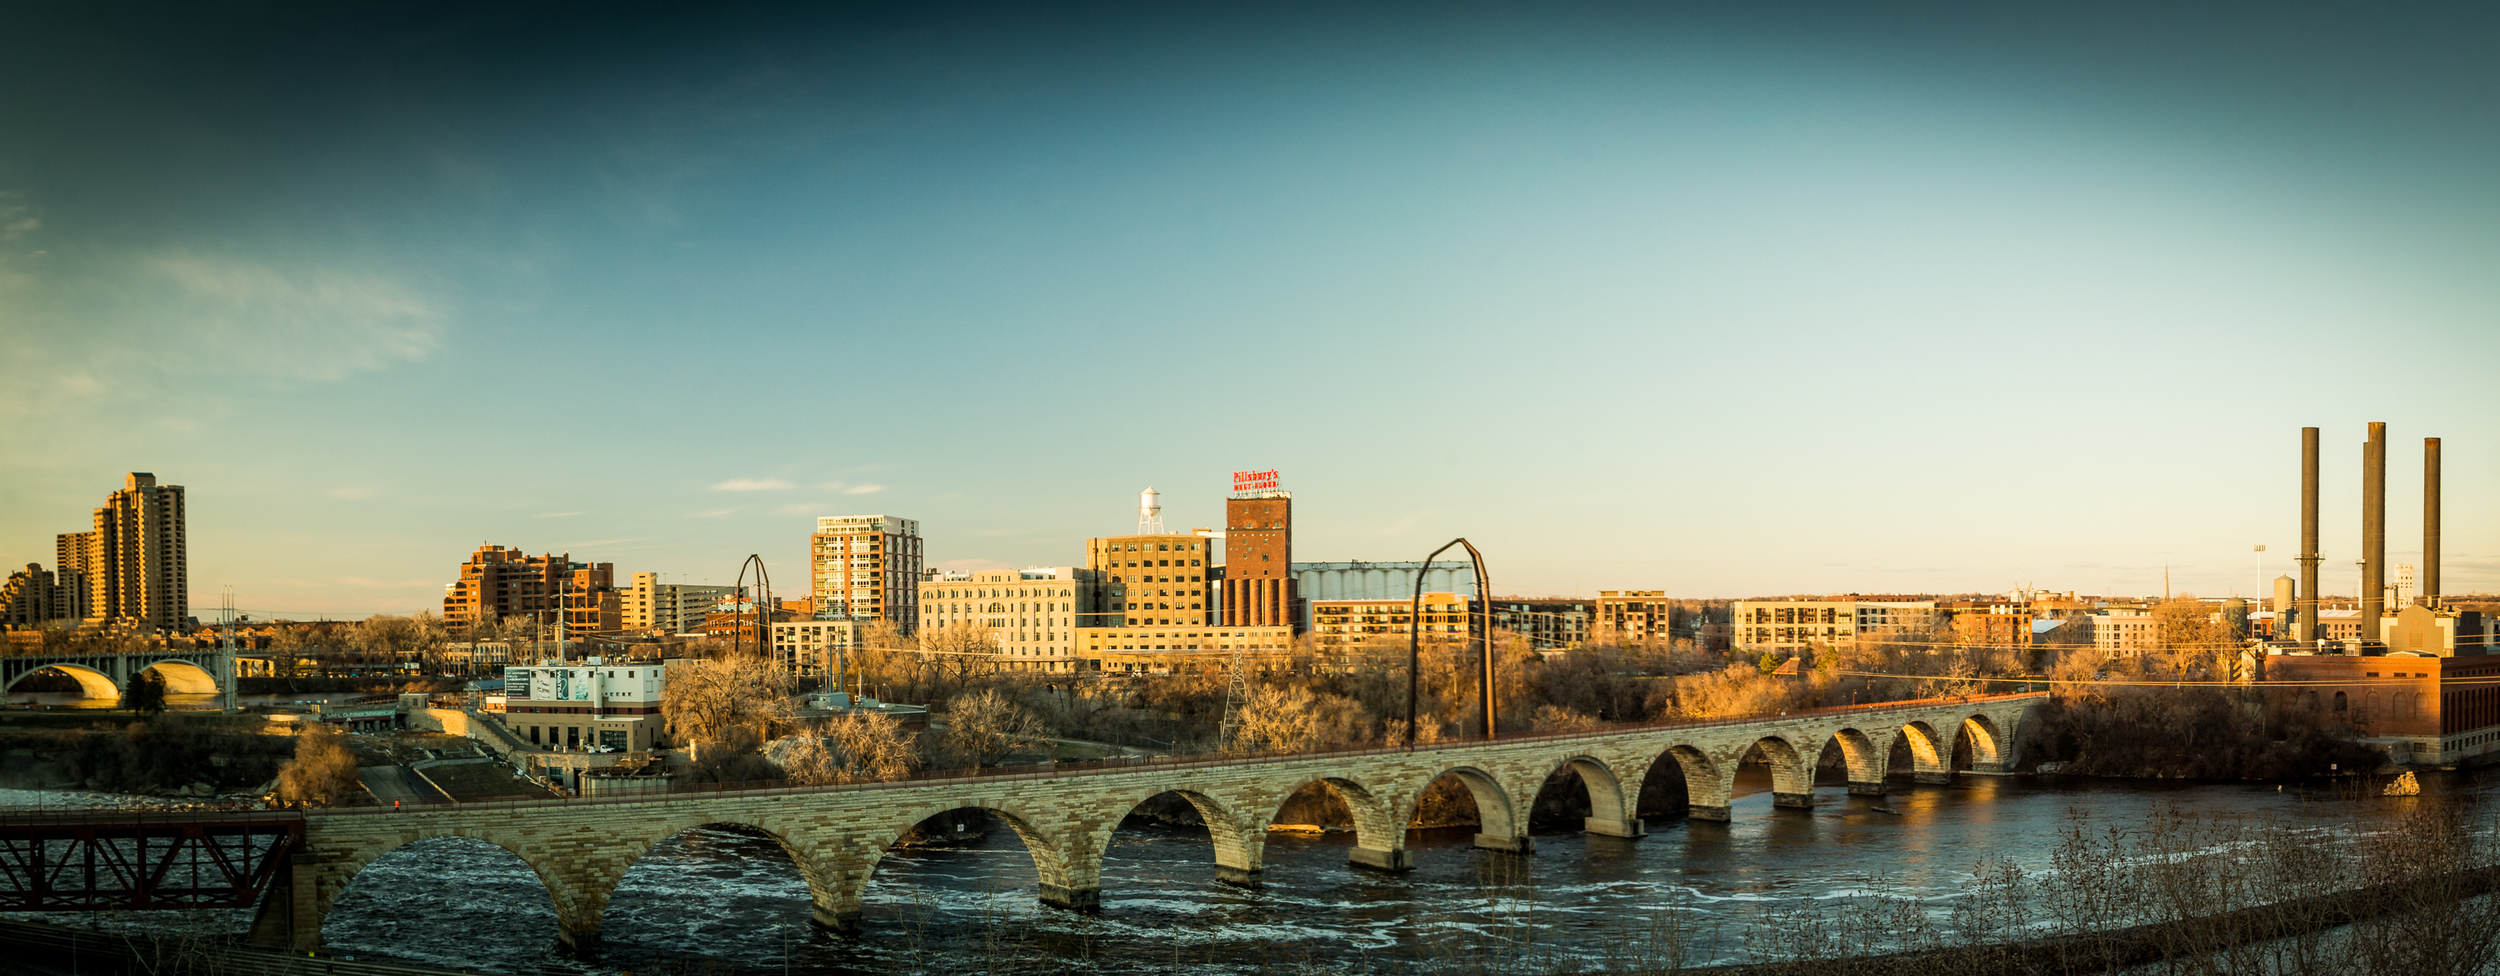 St. Anthony Falls. Taken from the Endless Bridge at the Guthrie Theater.                 1/100 sec @ f/7. w/ISO 400. 35mm 2 Image Panorama